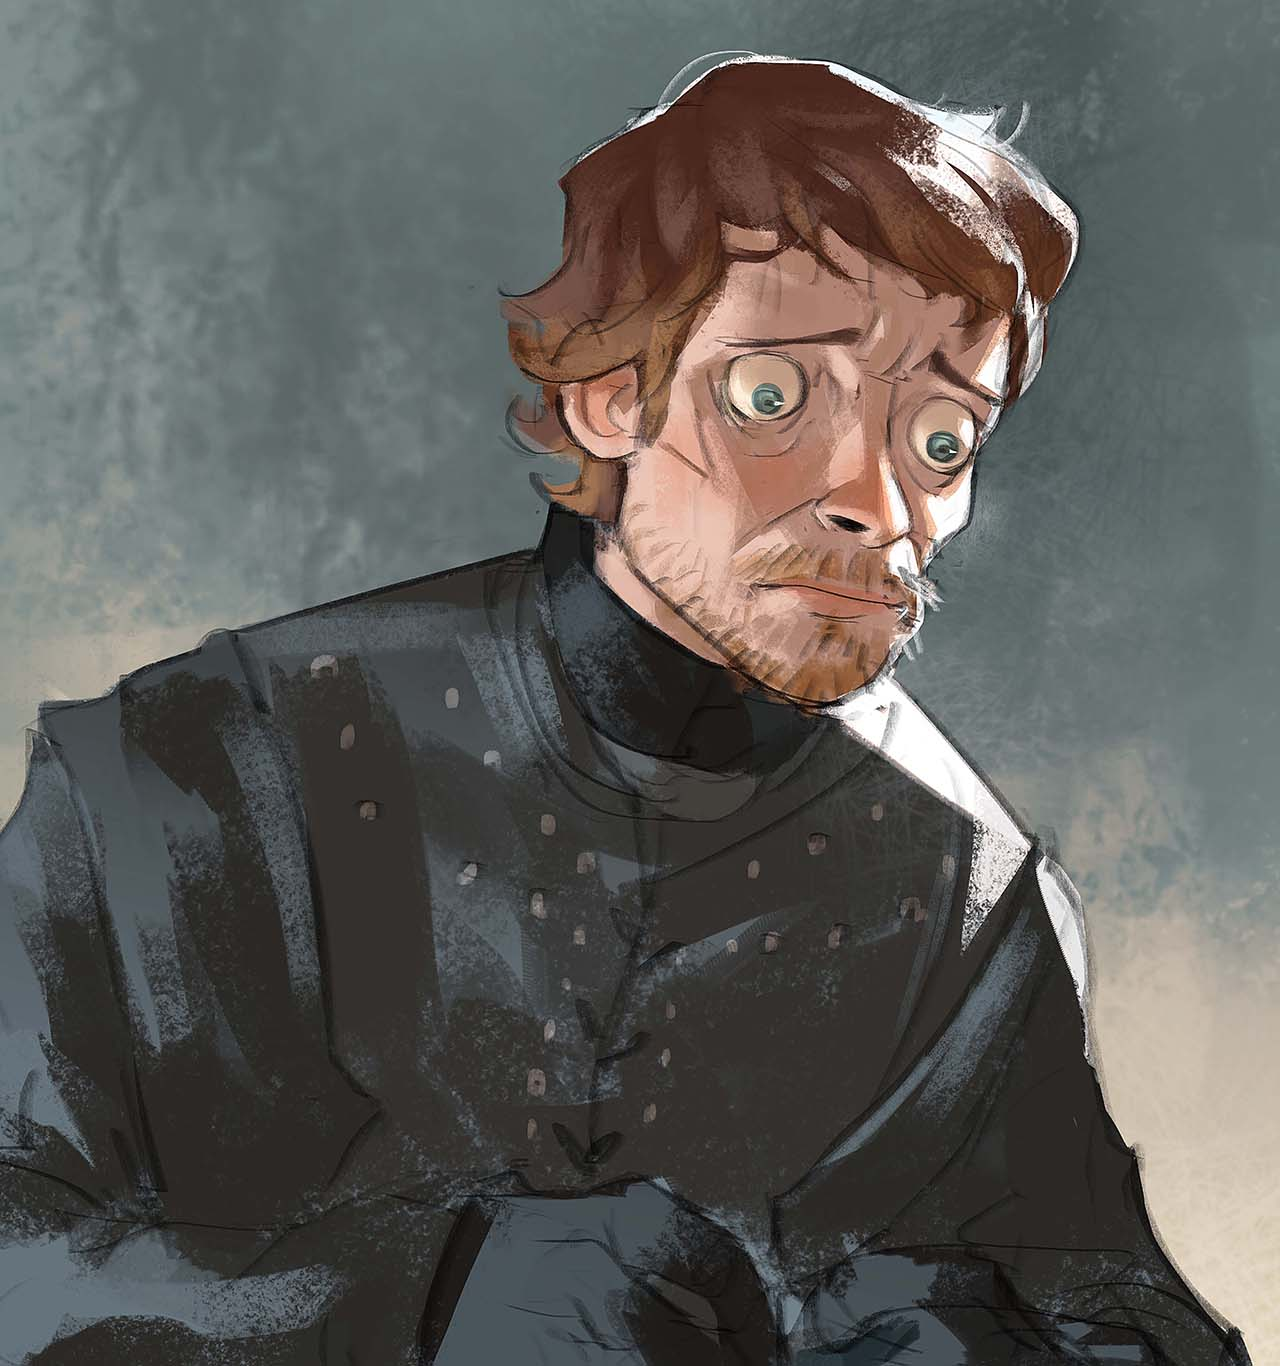 Artist Creates Unique Character Arts From Game Of Thrones – Theon Greyjoy Character Art By Ramón Nuñez